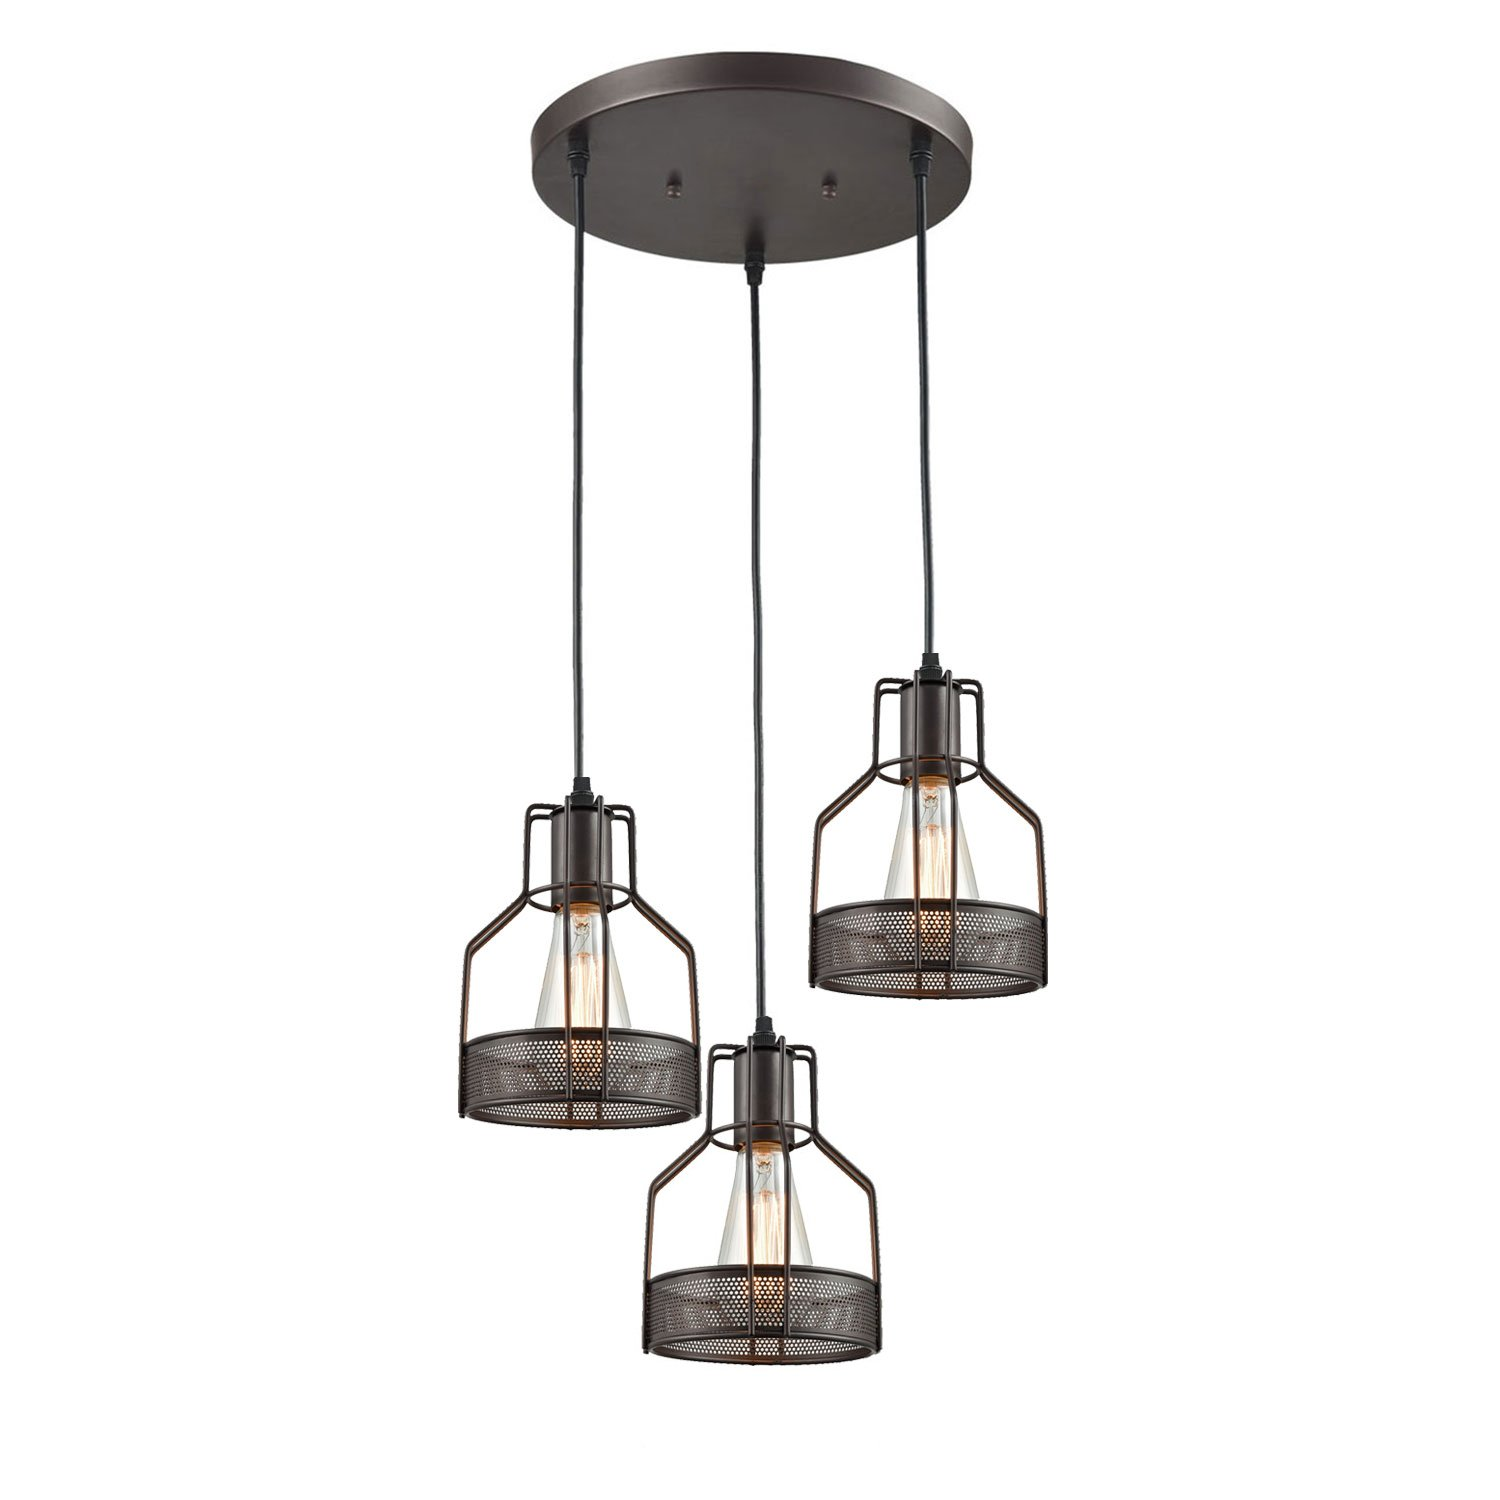 Truelite Industrial 3-Light Dining Room Pendant Rustic Oil-rubbed Bronze Wire Cage Hanging Light Fixture